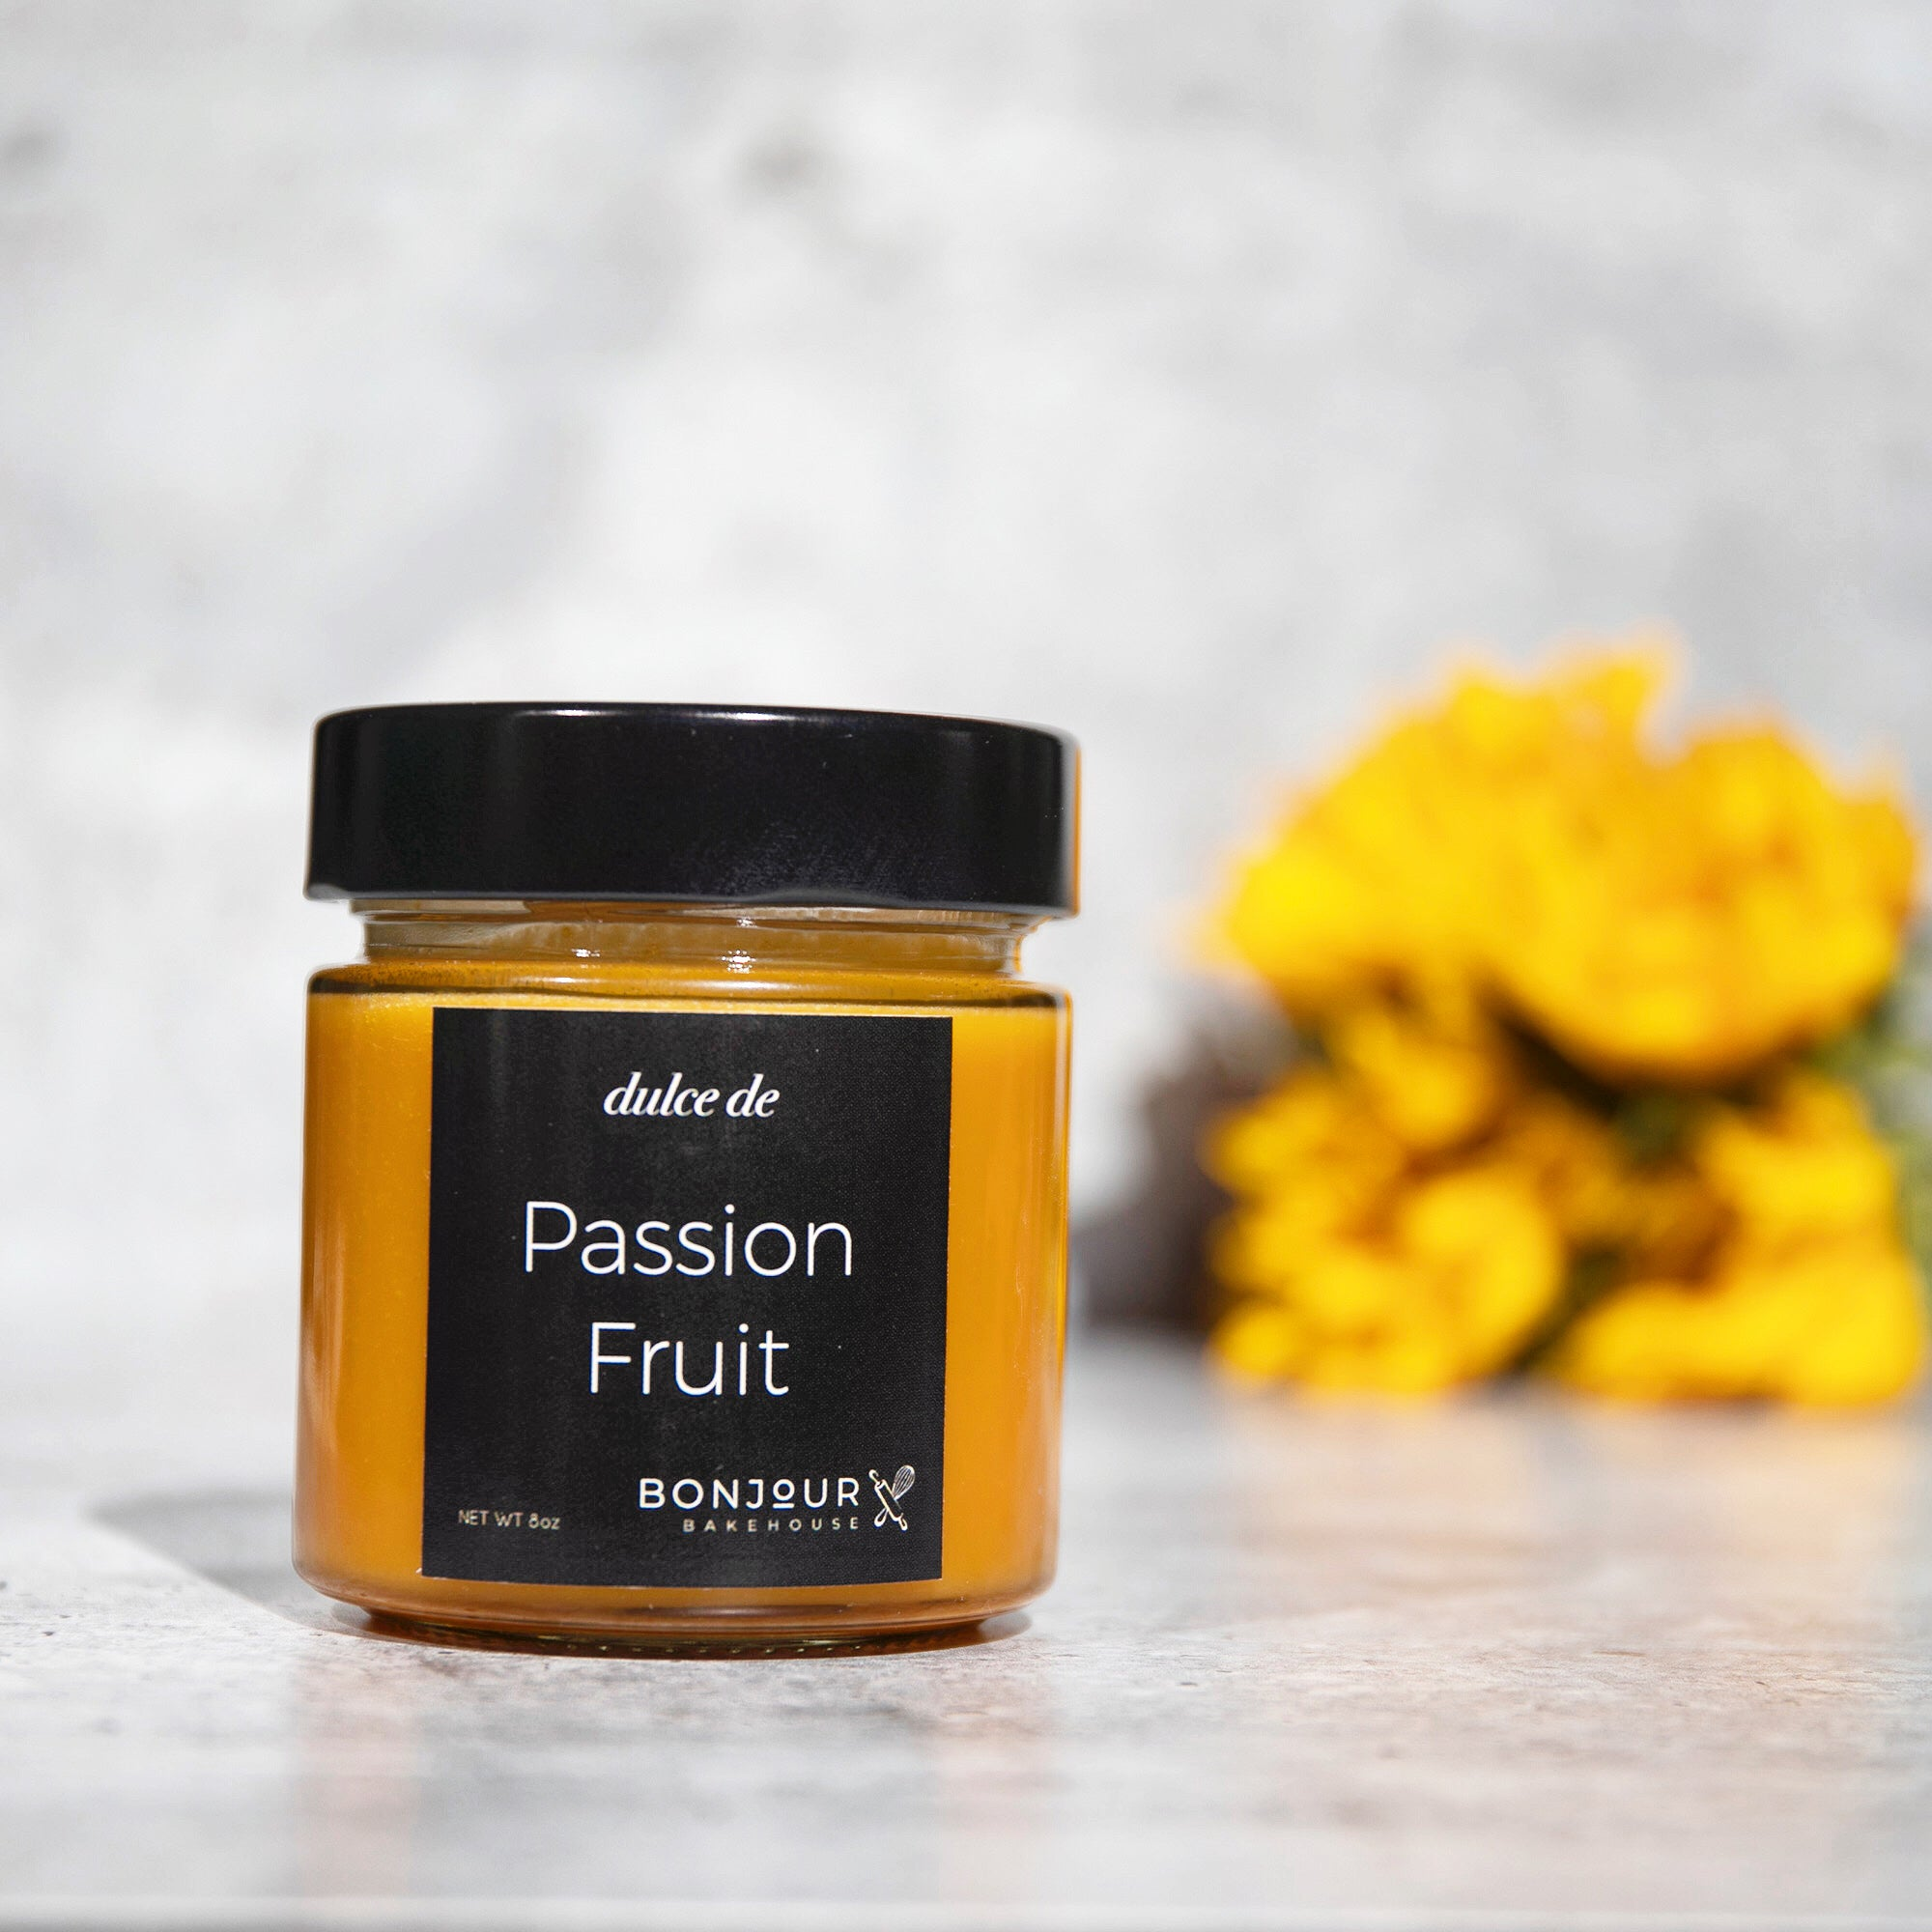 Dulce de Passion Fruit